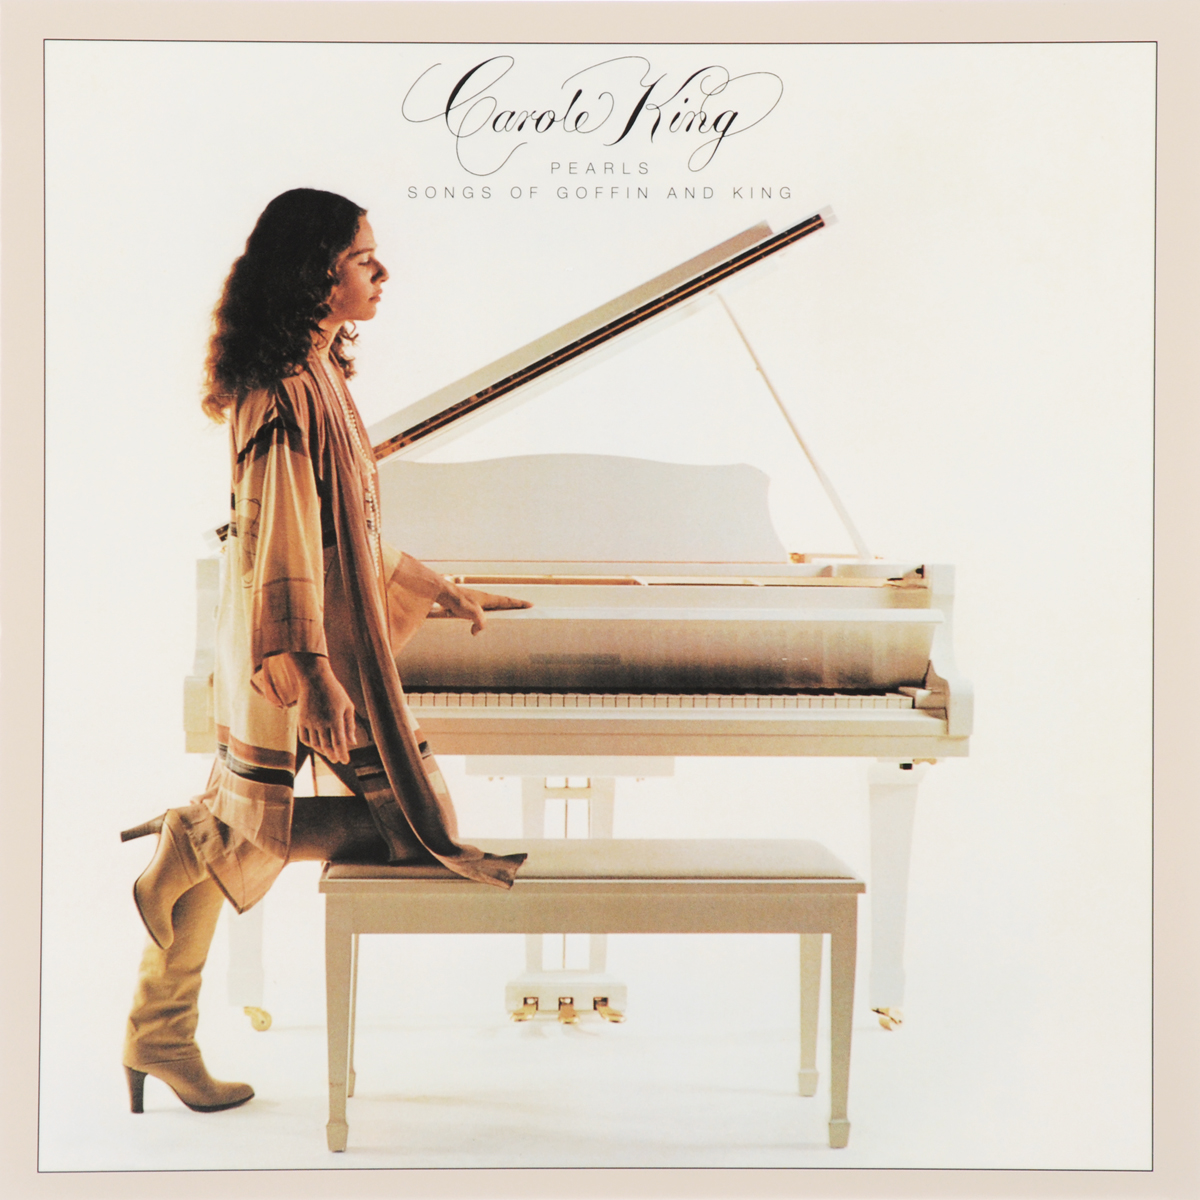 Кэрол Кинг Carole King. Pearls: Songs Of Goffin And King (LP) b b king king of the blues lp